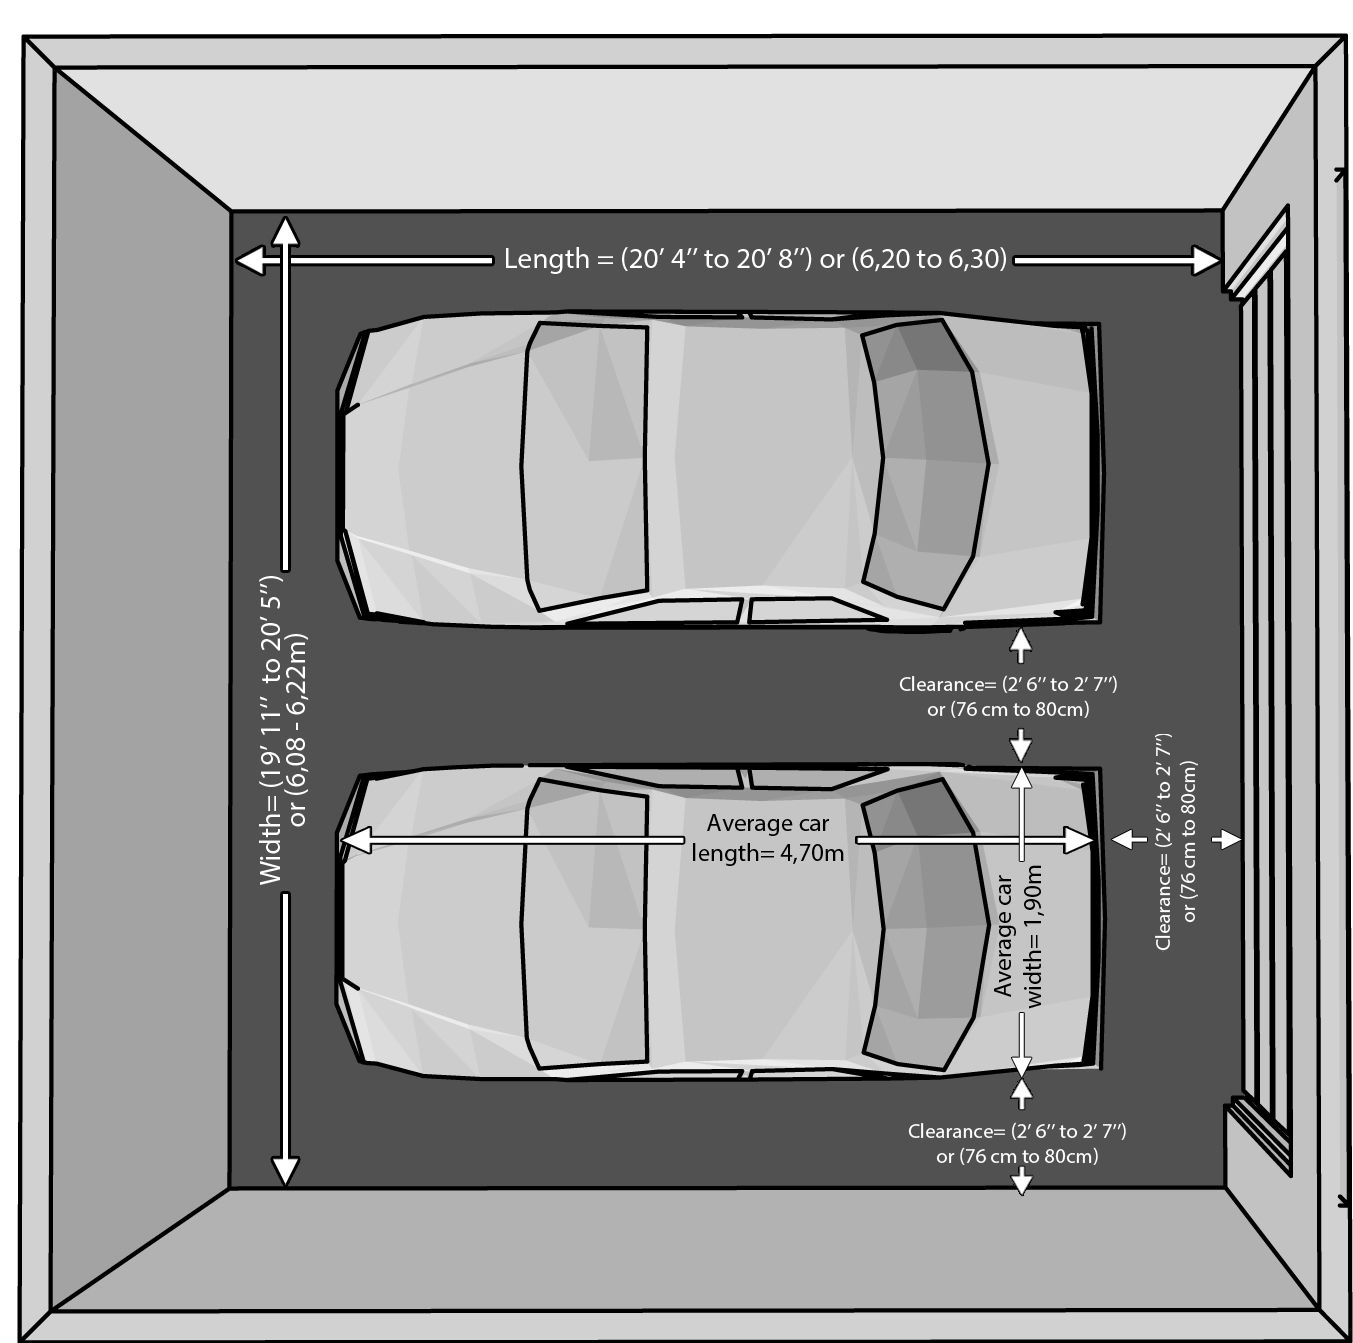 2 Car Garage Dimensions Garage Size For Two Cars Garage Dimensions For Two Cars Garage